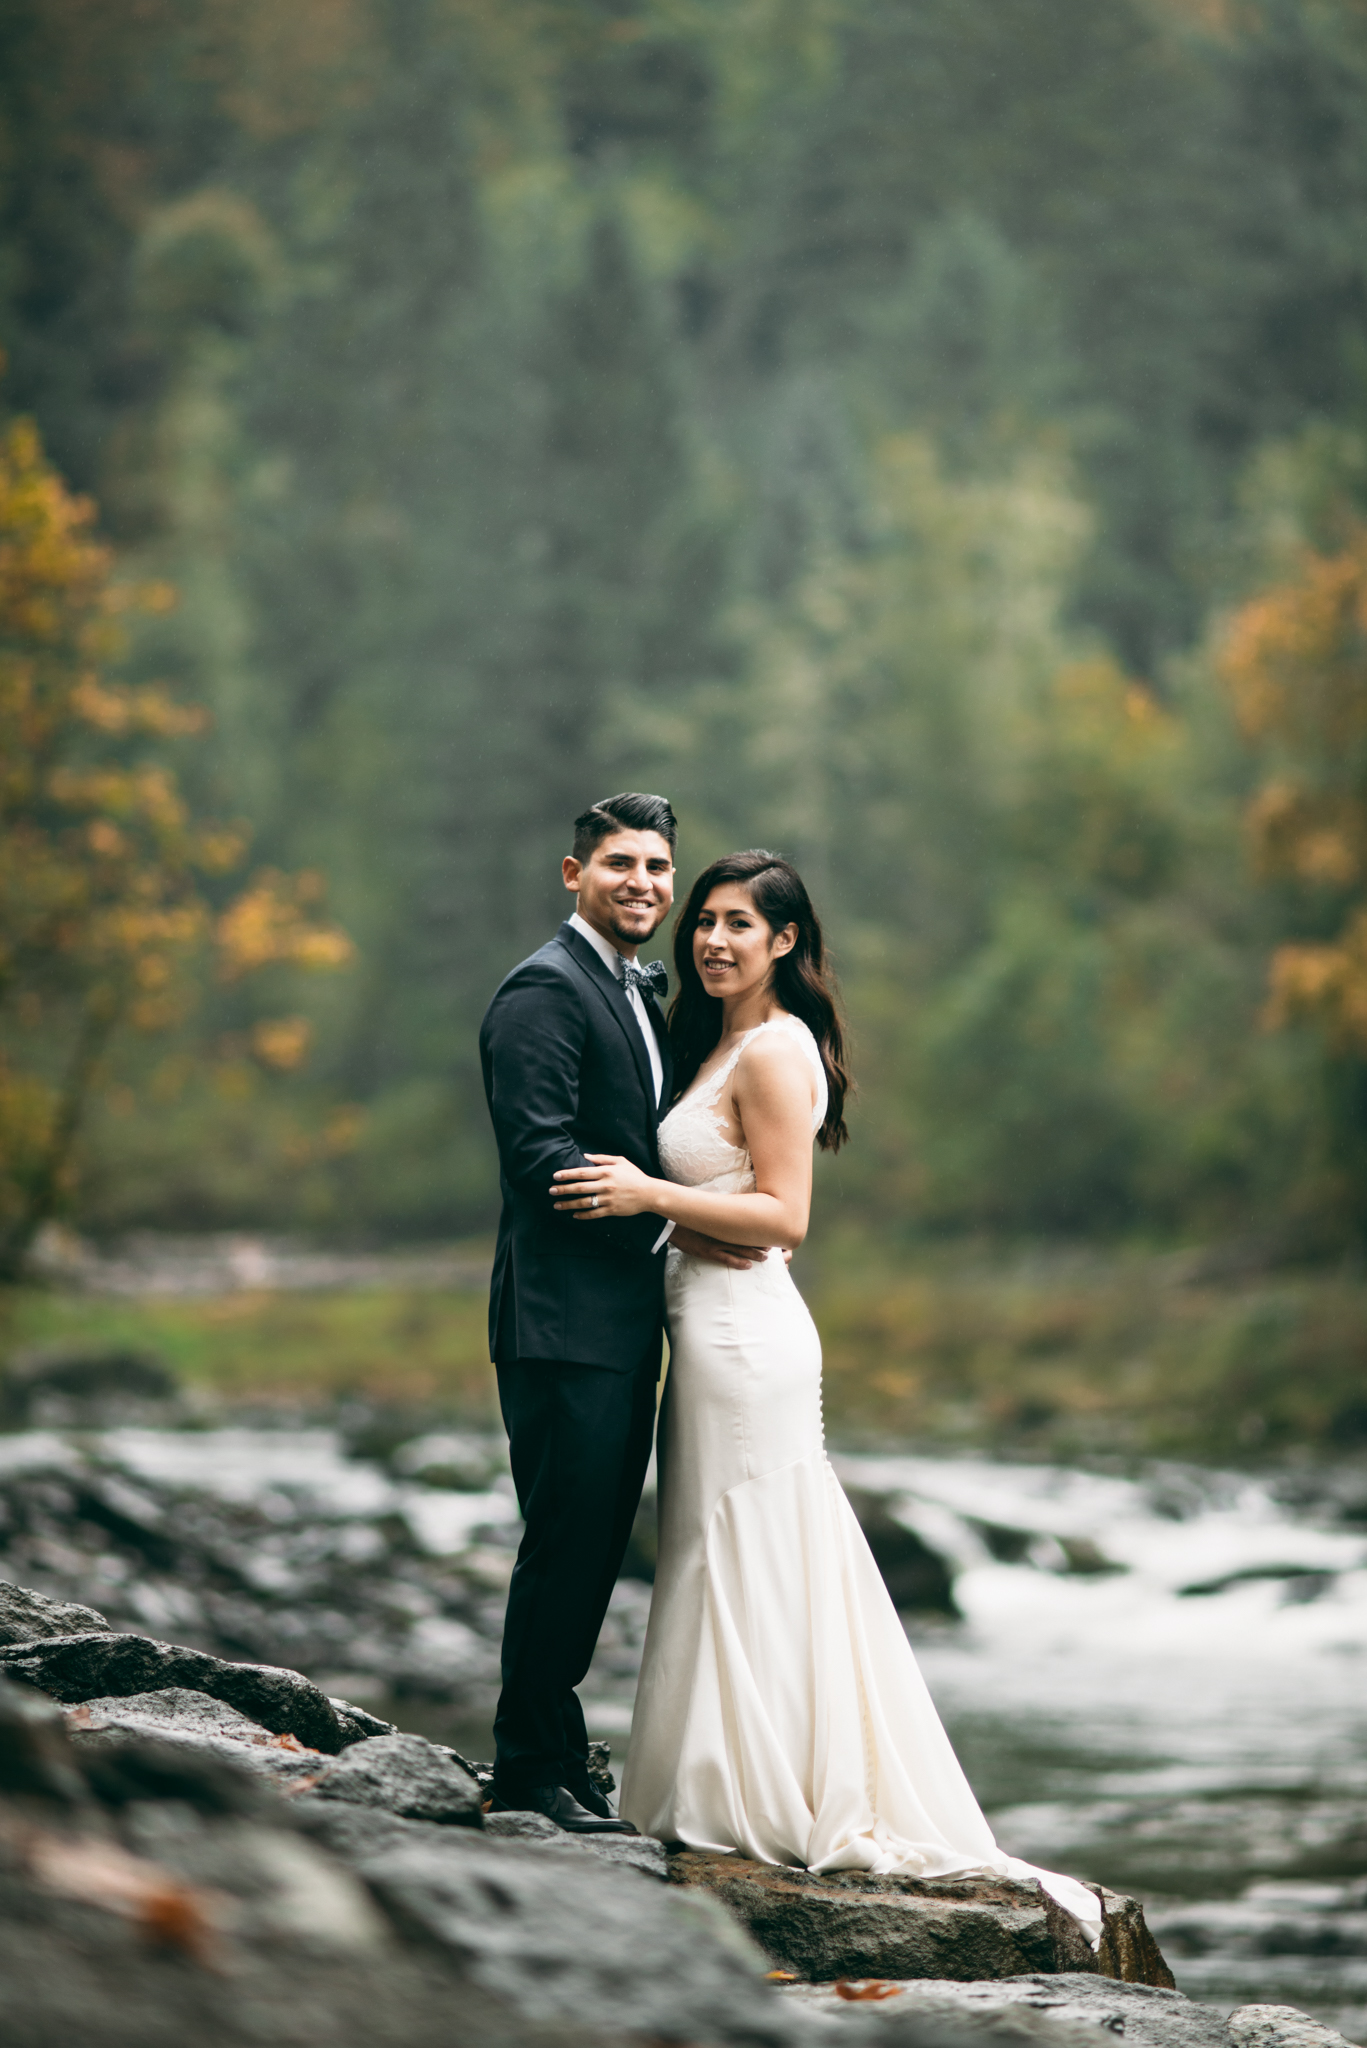 ©Isaiah & Taylor Photography - Los Angeles Wedding - Snoqualmie, Washington Honeymoon-013.jpg